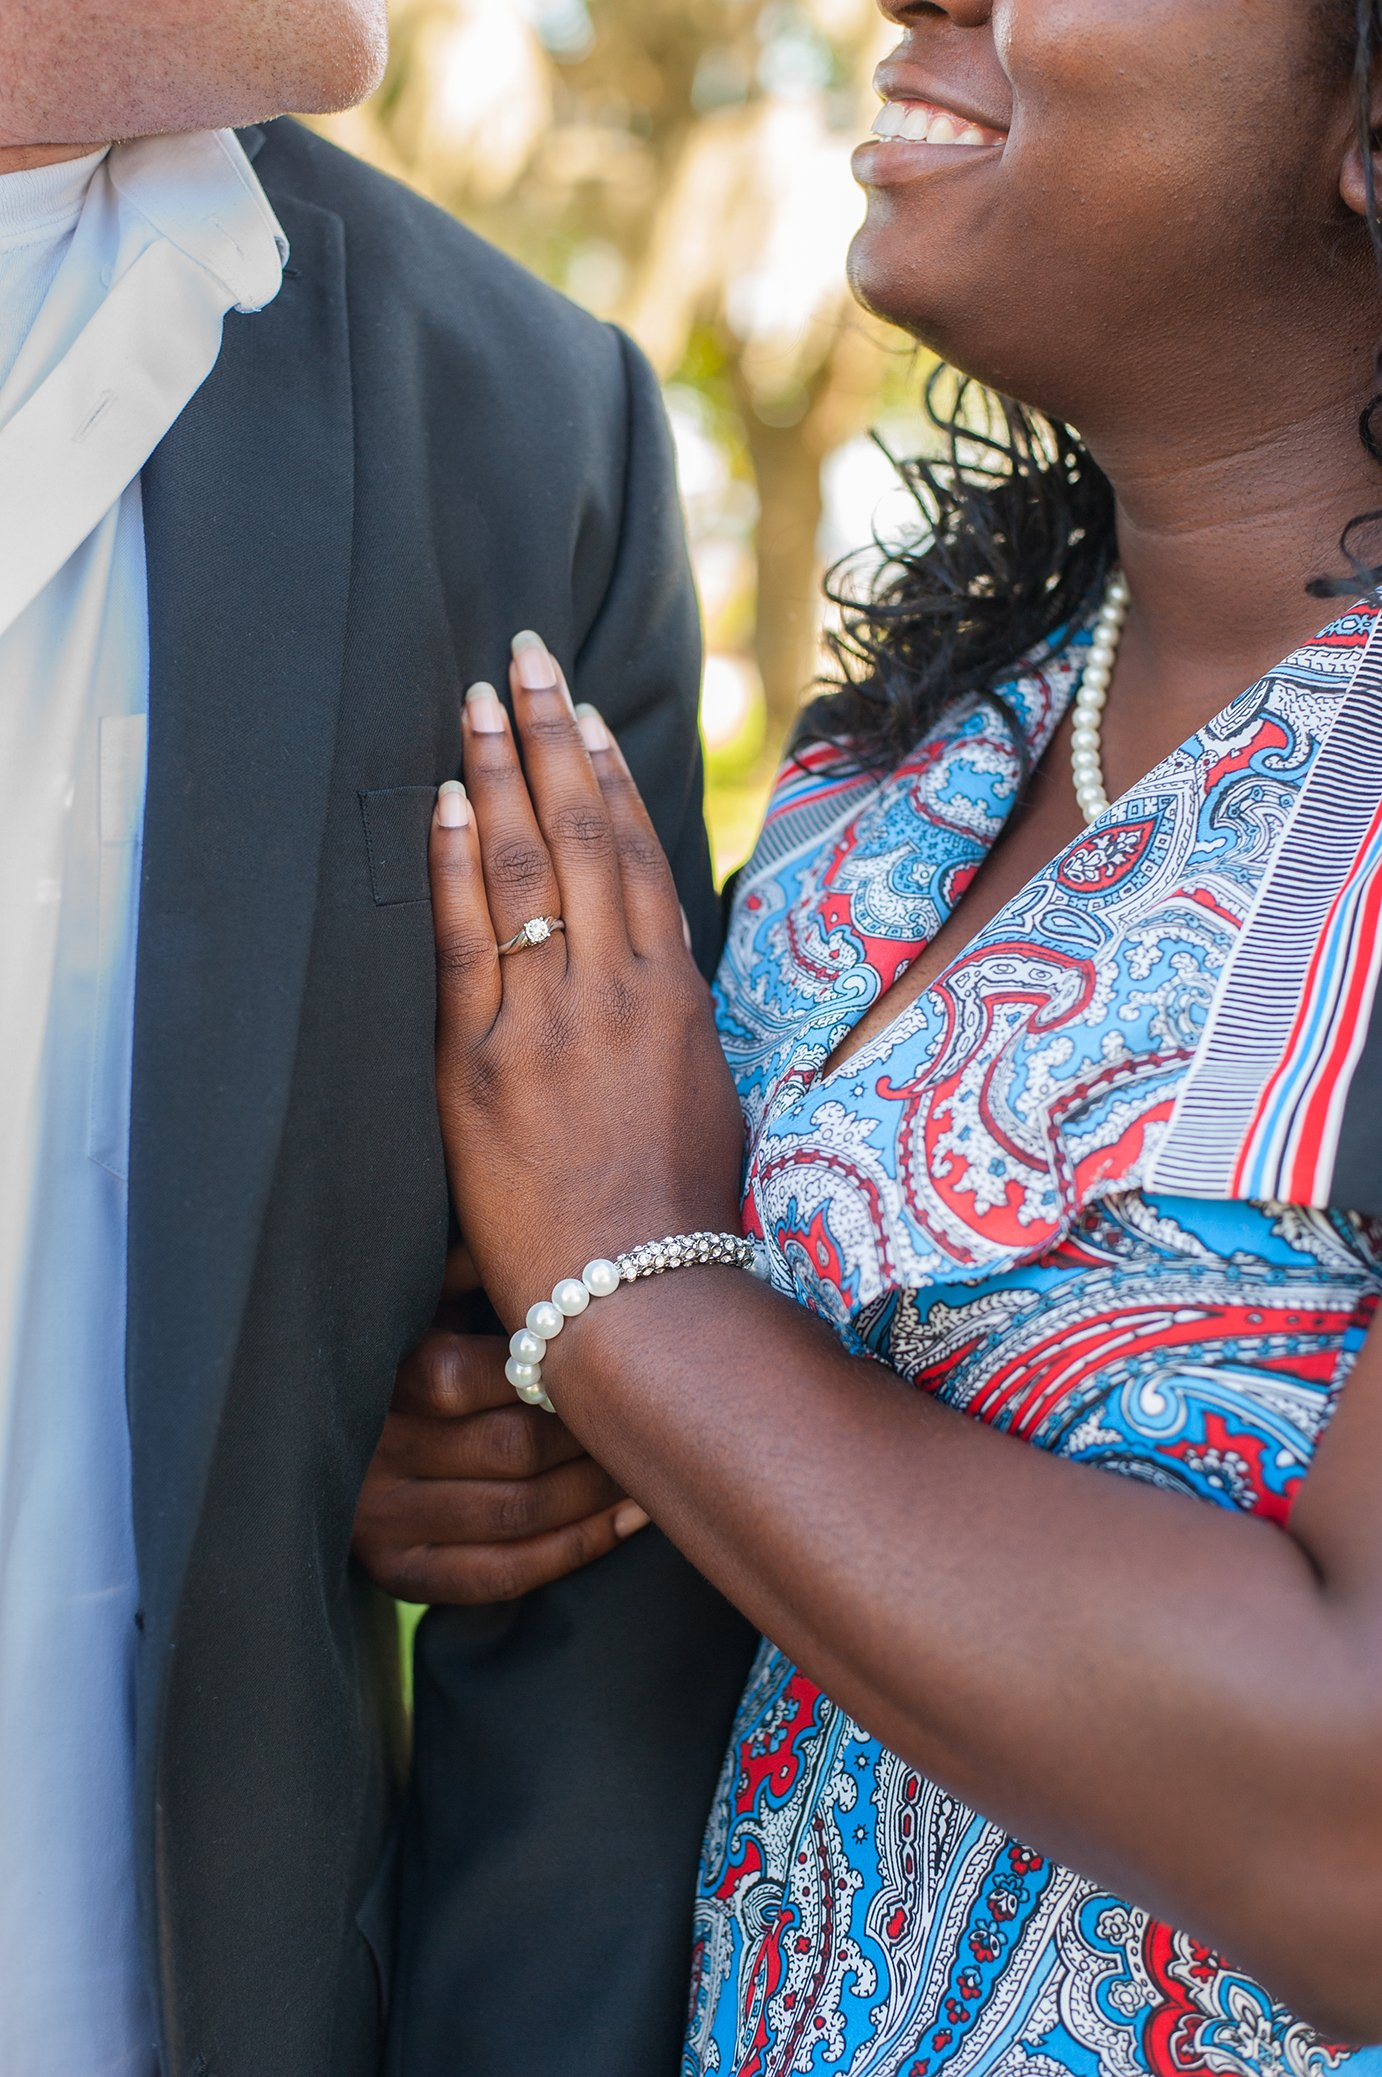 Engaged couple show off engagement ring in engagement photos at riverfront park in charleston sc